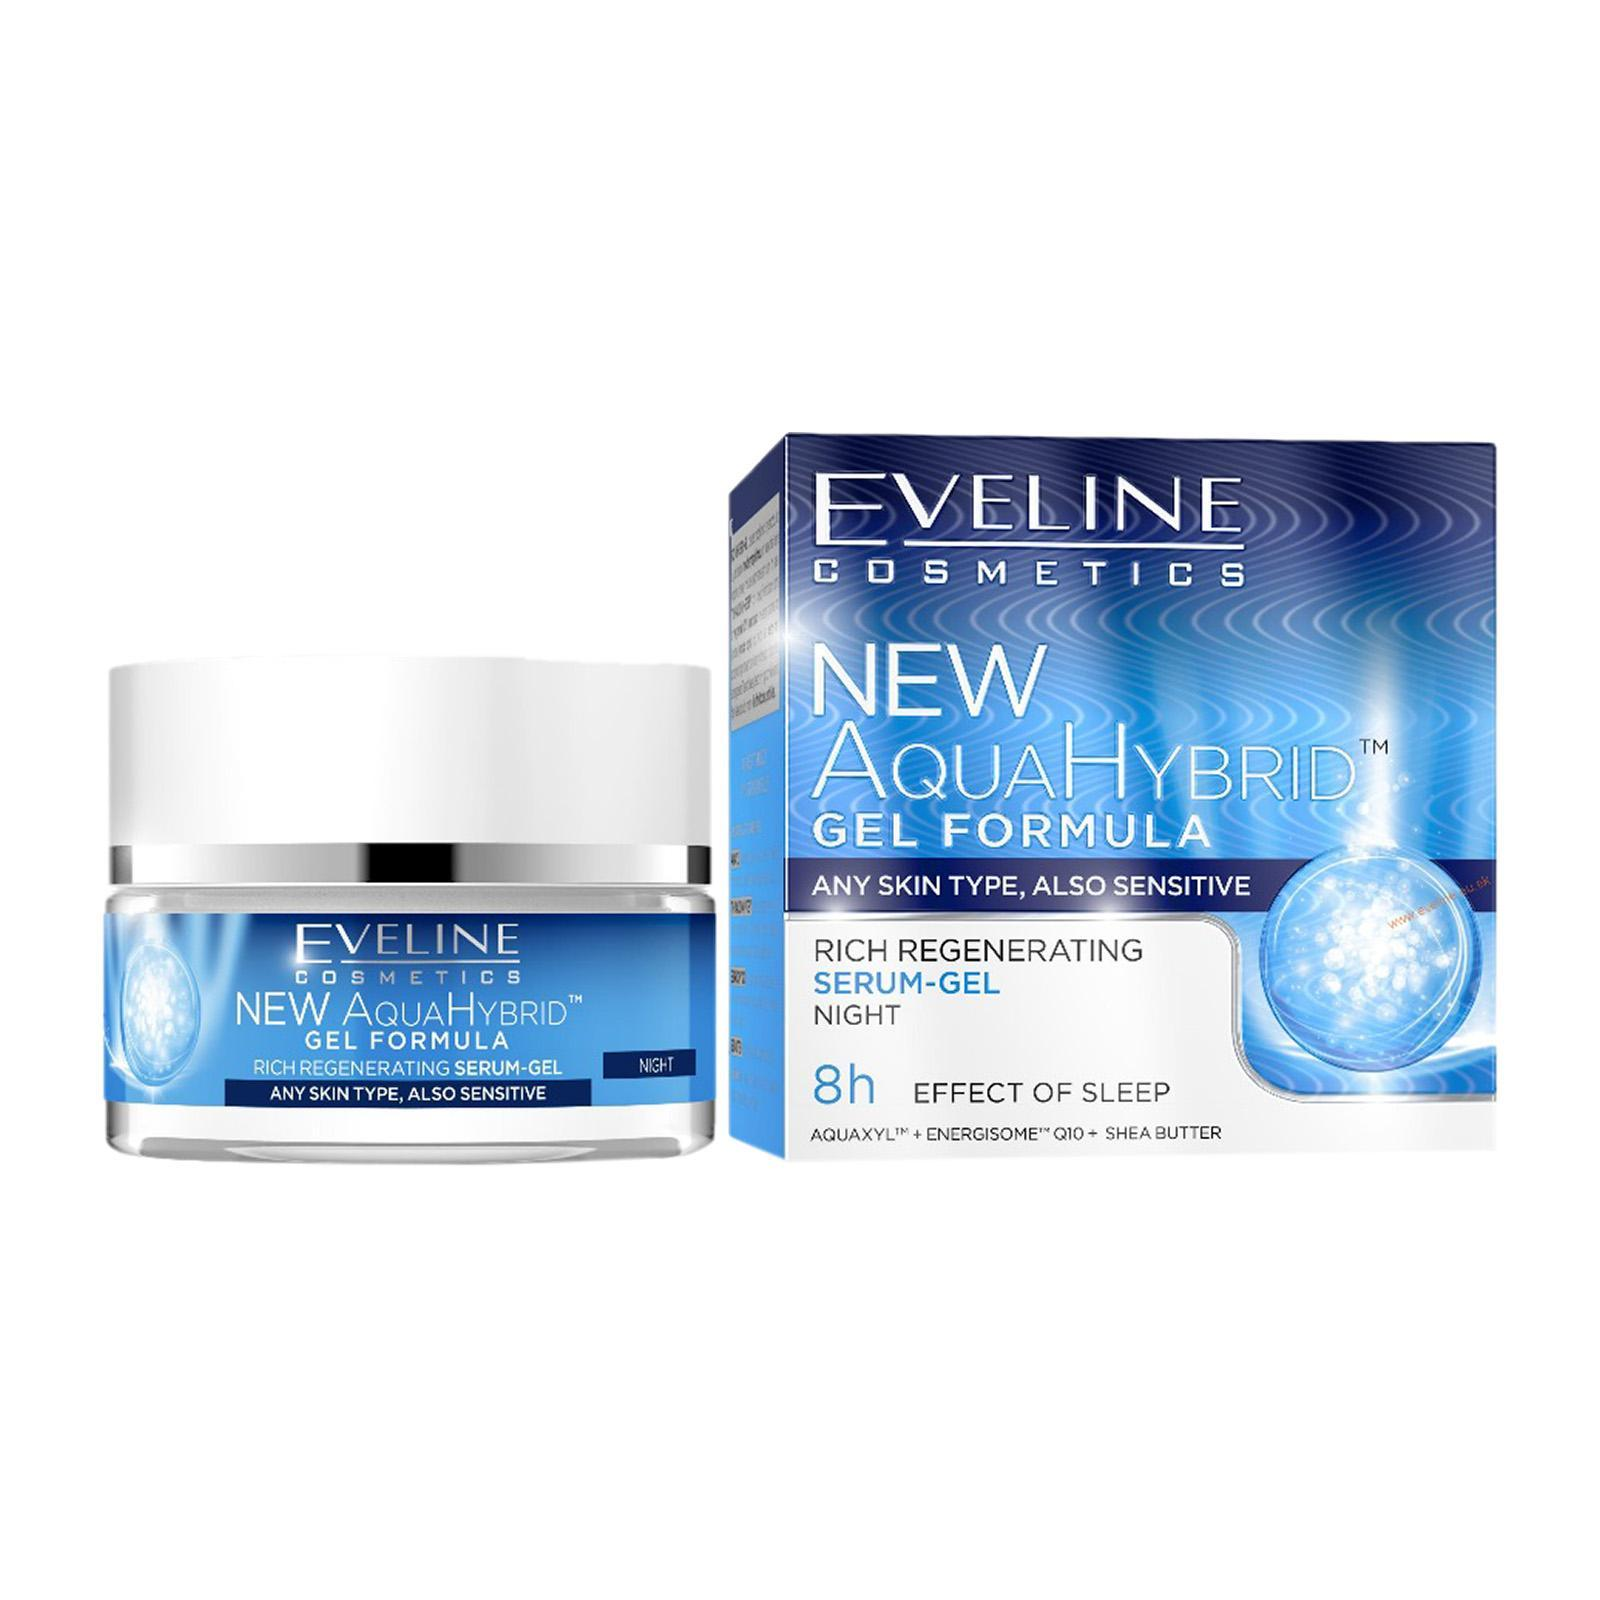 b76187e8dc1 EVELINE - Buy EVELINE at Best Price in Singapore | redmart.lazada.sg